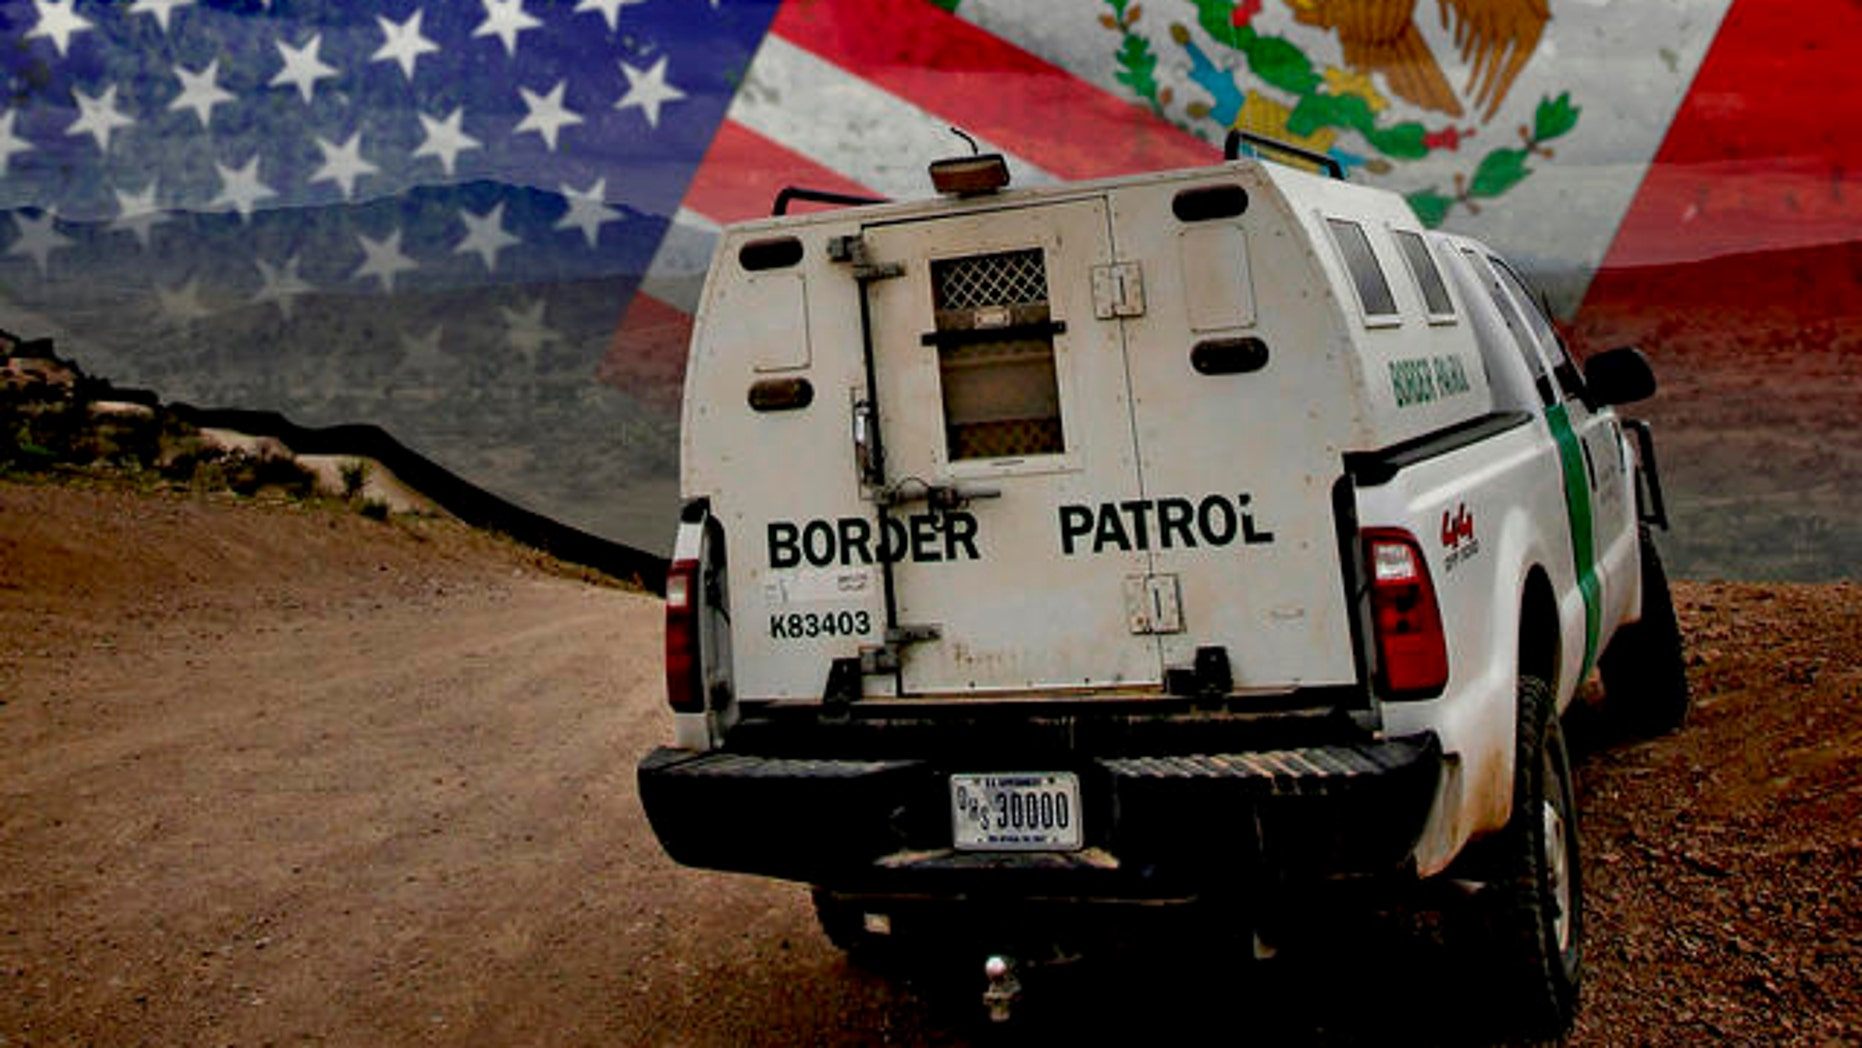 A Customs and Border Patrol agent patrols along the international border in Nogales, Ariz. Thursday, April 22, 2010. Illegal immigration and border security are heating up as issues after the slaying of a border-area rancher and imminent passage of state legislation to crack down on illegal immigration.  (AP Photo/Matt York)